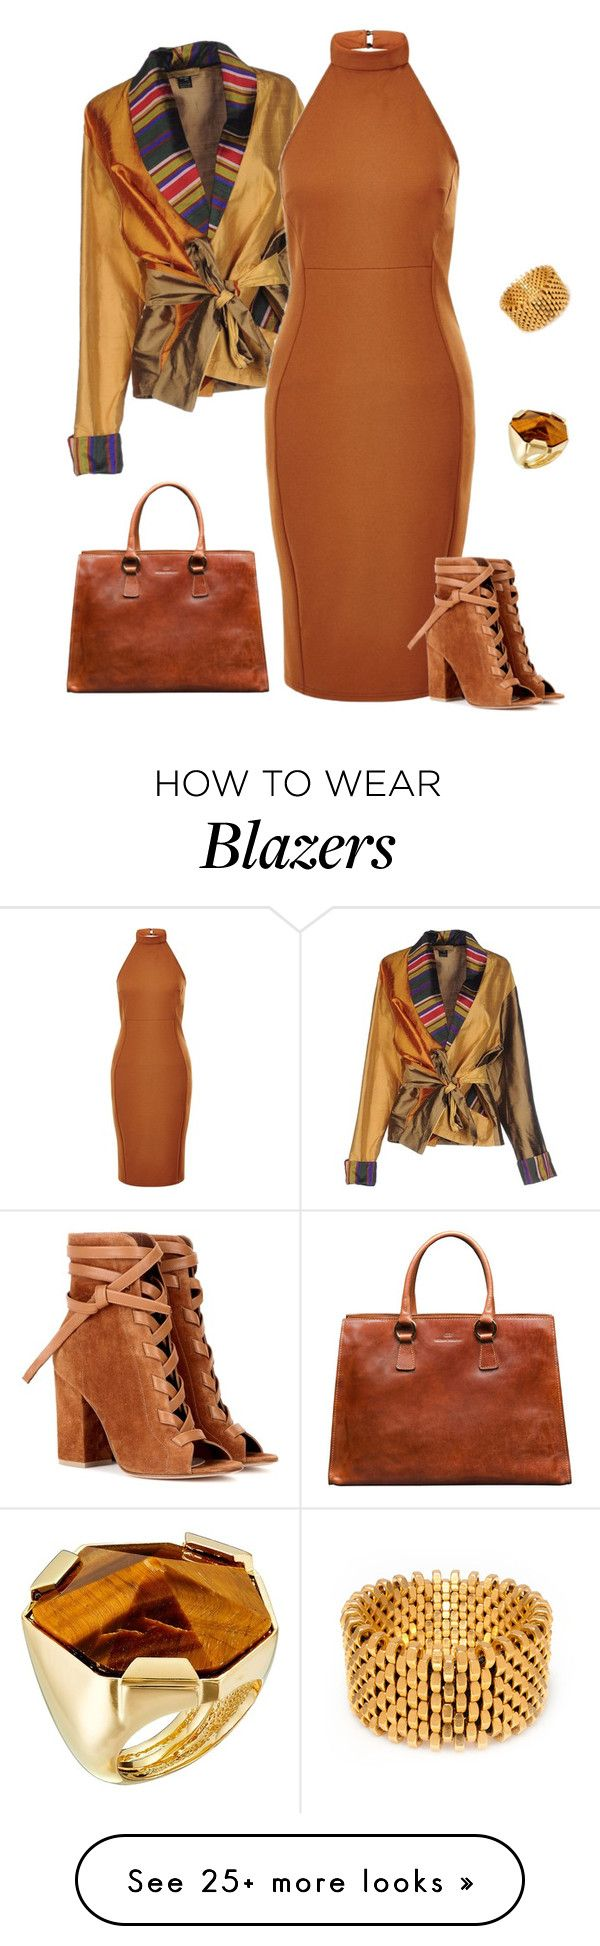 """outfit 3531"" by natalyag on Polyvore featuring Gianvito Rossi, Alice Menter and Vince Camuto"